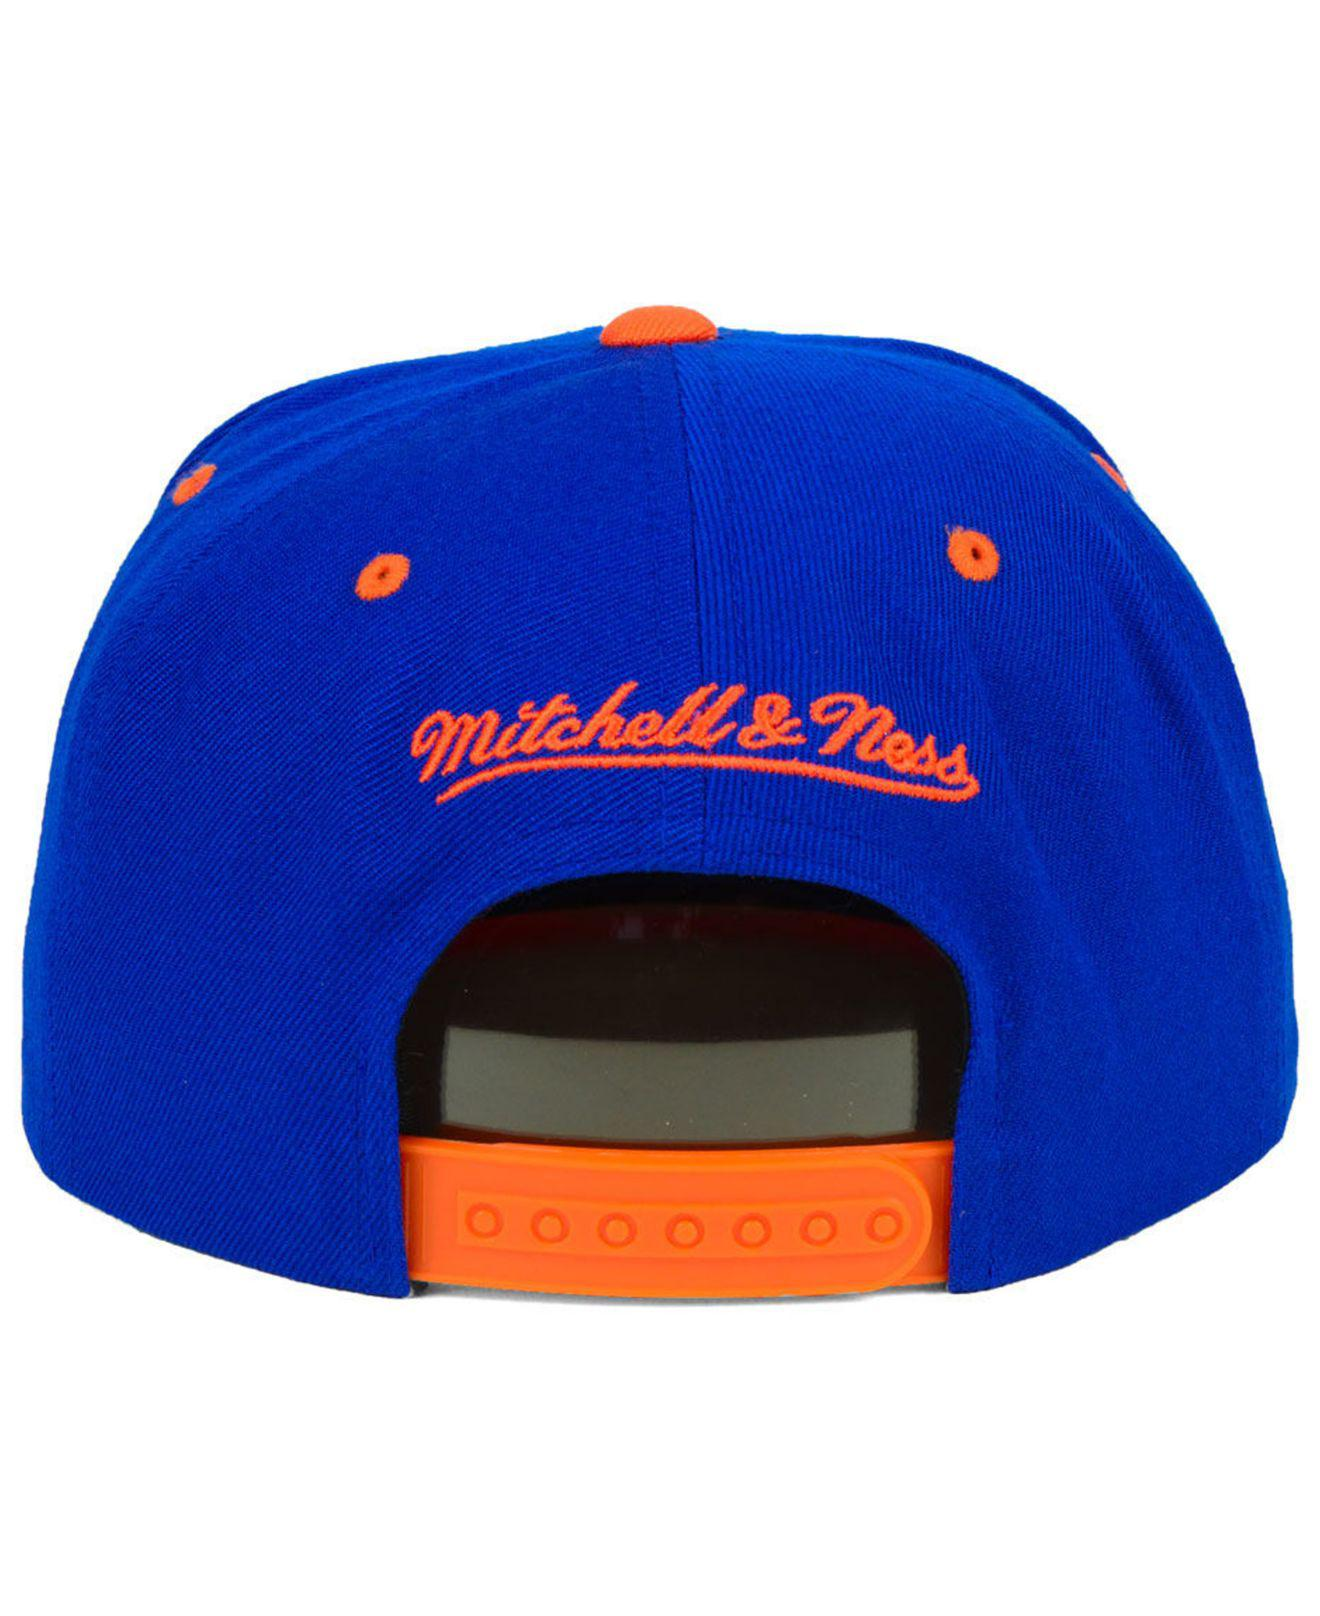 044deb7bf6e Lyst - Mitchell   Ness New York Knicks Rubber Weld Snapback Cap in ...